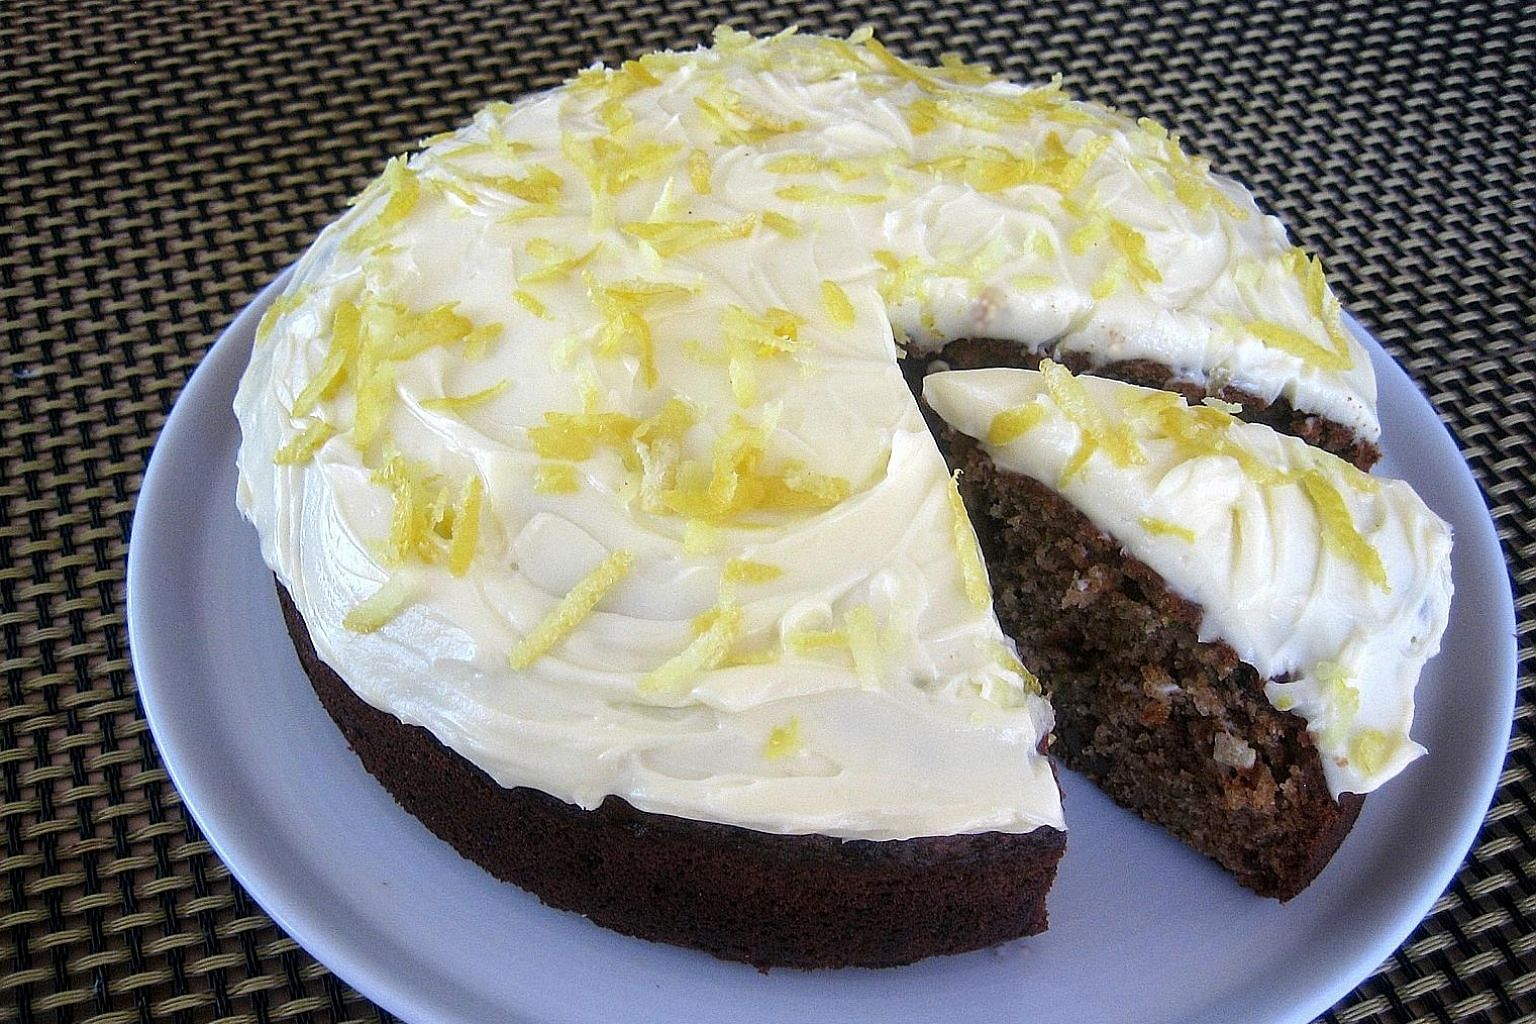 Slather the zucchini cake with a layer of cream cheese frosting and you are good to go.